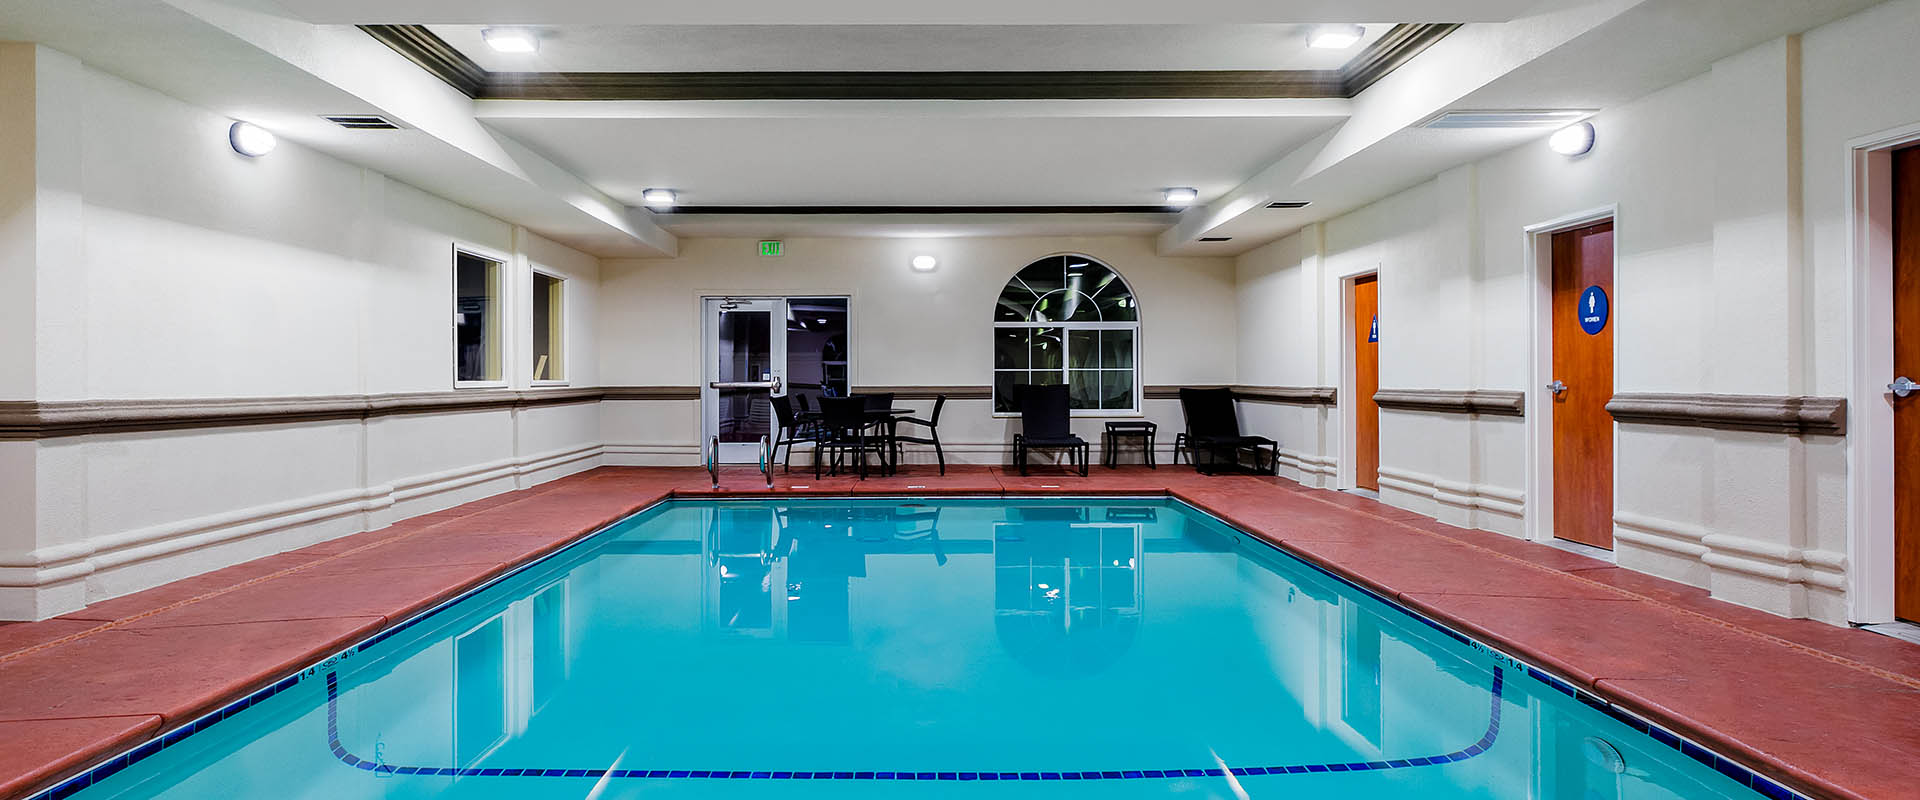 Orovlle hotel, IHG hotel, California, travel, lodging, pool